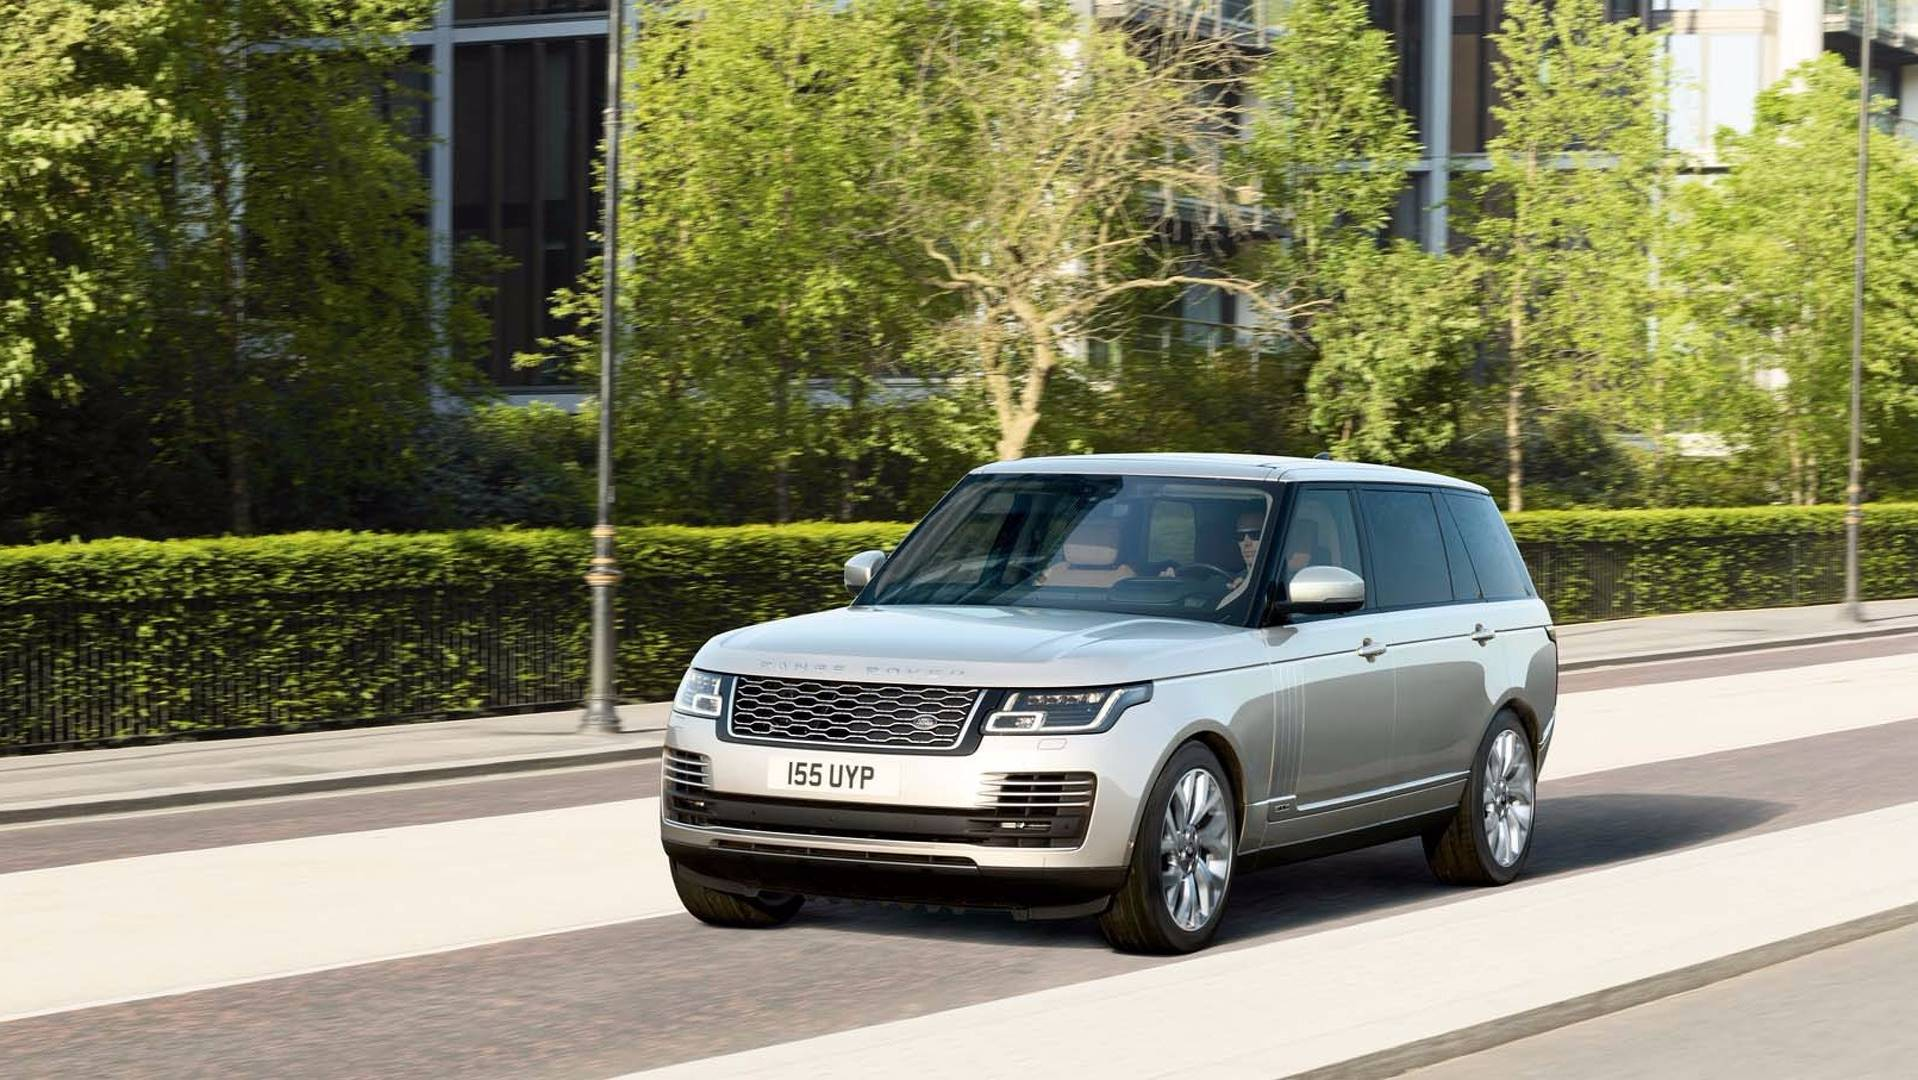 2018 Range Rover Facelift Officially Revealed P400e Phev